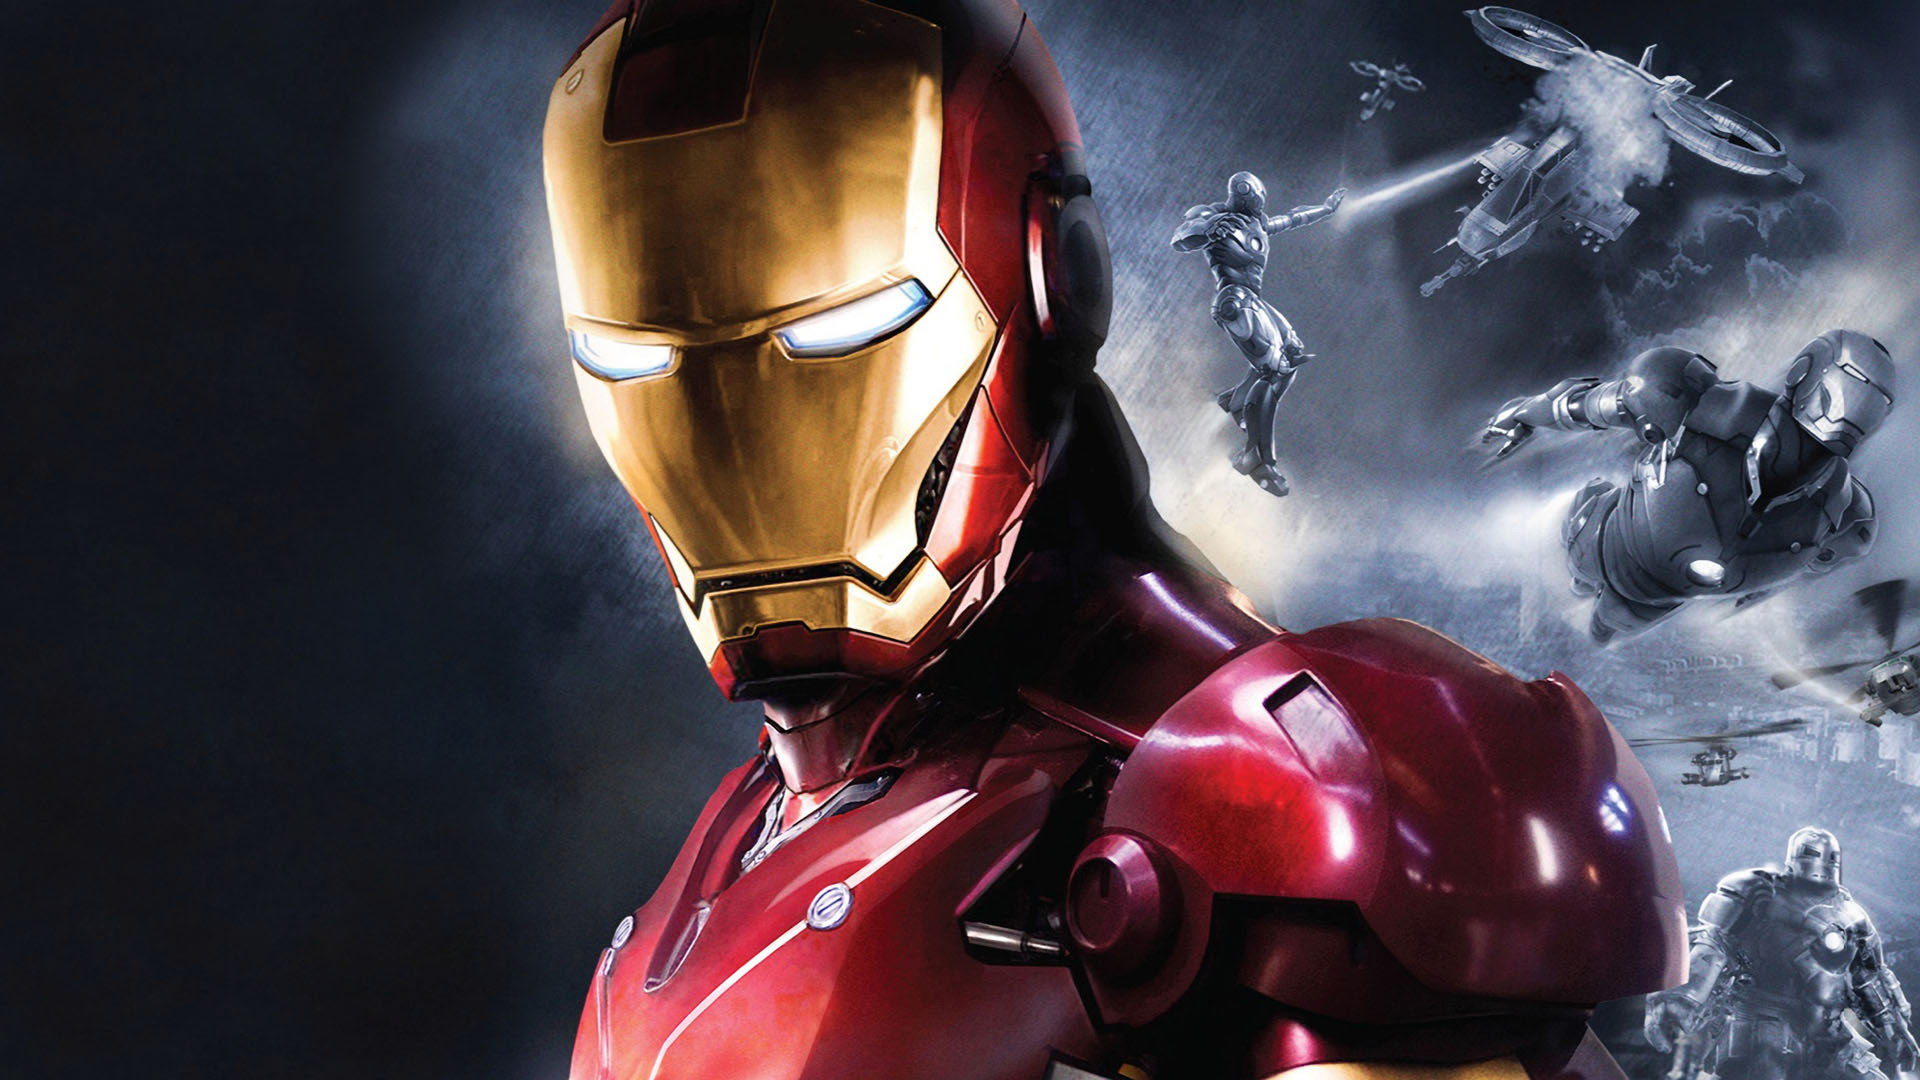 Iron Man 2 Wallpaper HD Widescreen Desktop 1 HD Desktop 1920x1080